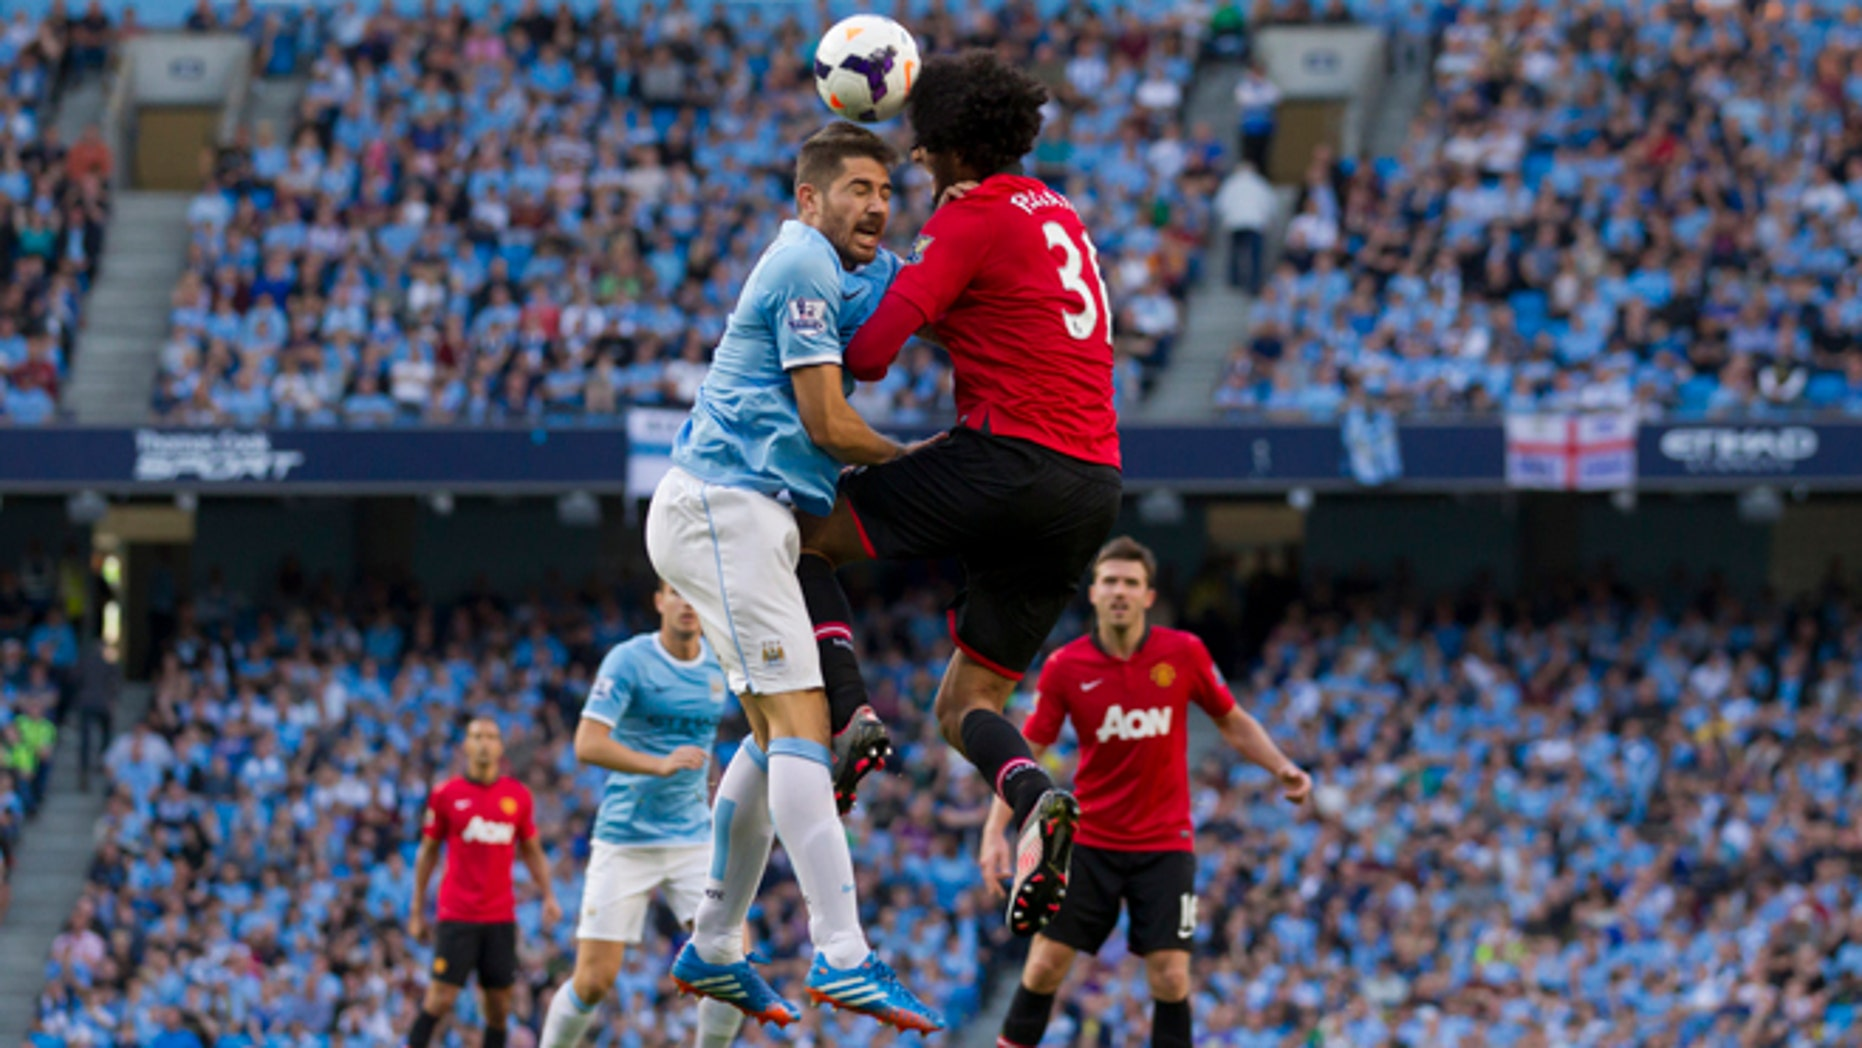 Manchester City's Aleksander Kolarov,  centre left, jumps for the ball against Manchester United's Marouane Fellaini during their English Premier League soccer match at the Etihad Stadium, Manchester, England, Sunday Sept. 22, 2013. (AP Photo/Jon Super)